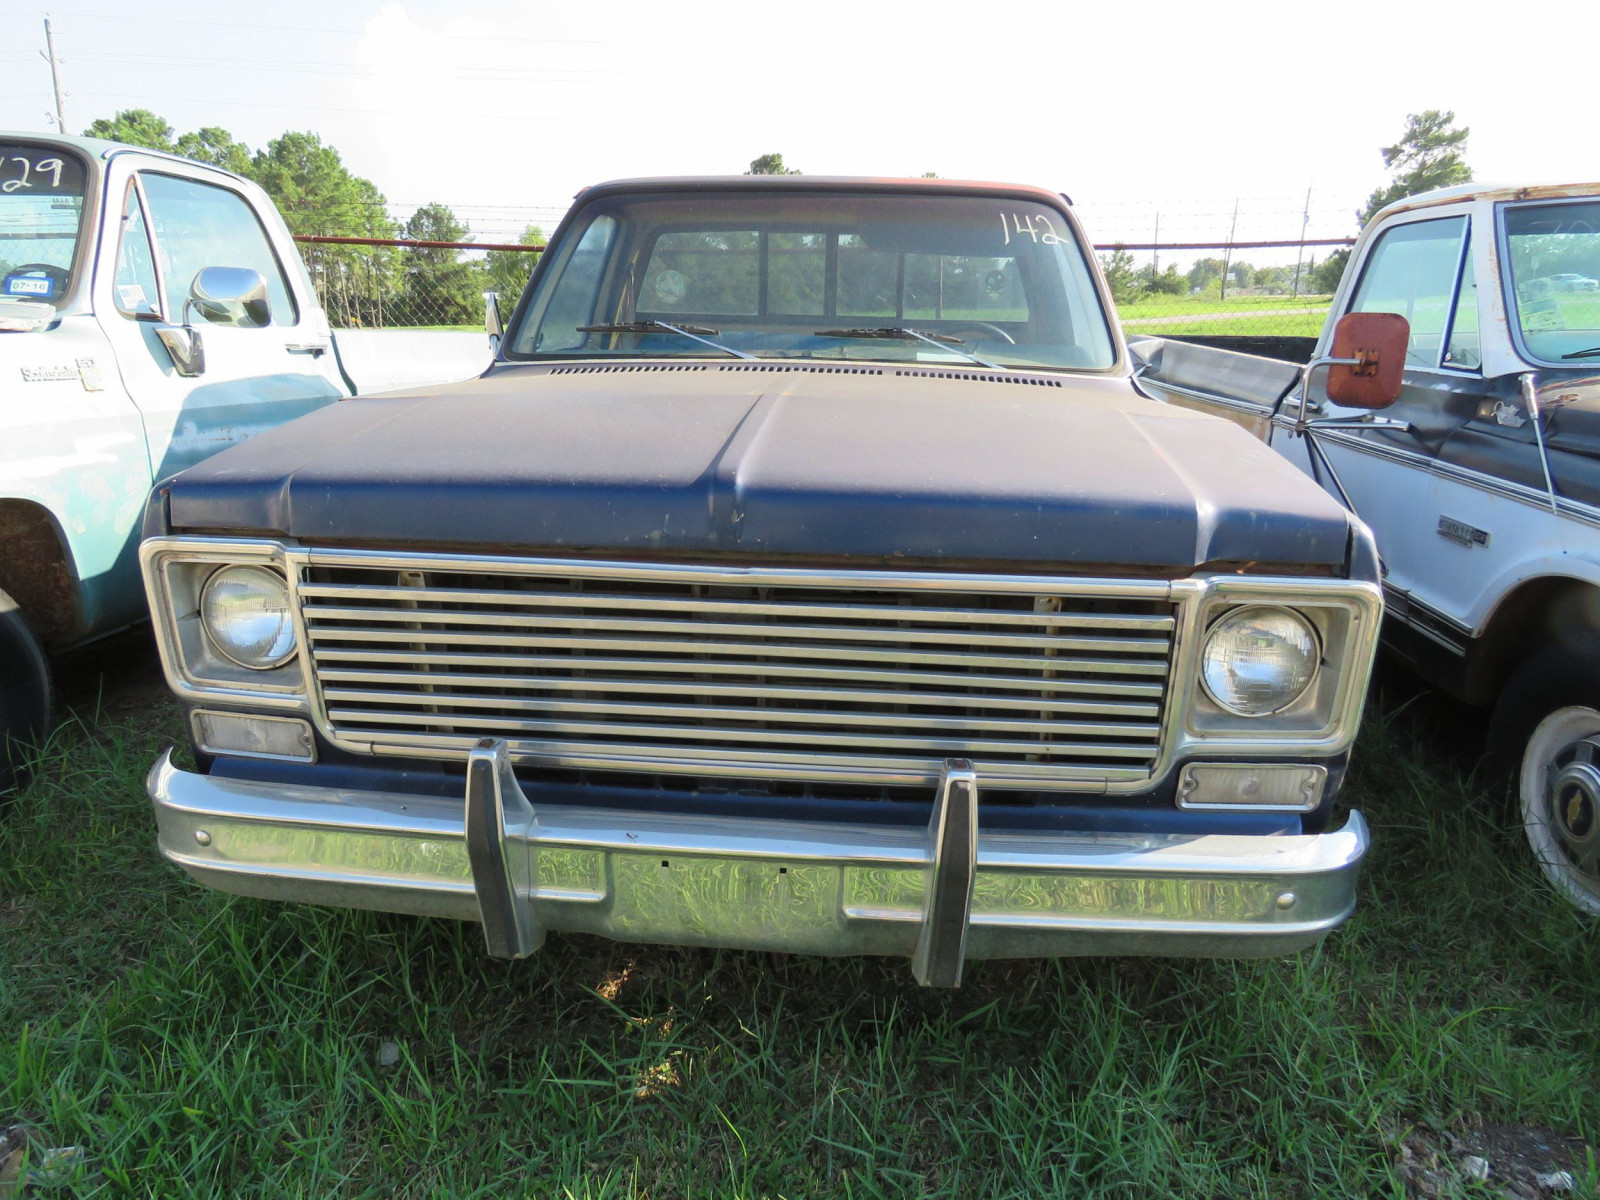 1978 Chevrolet Big 10 Pickup - Image 2